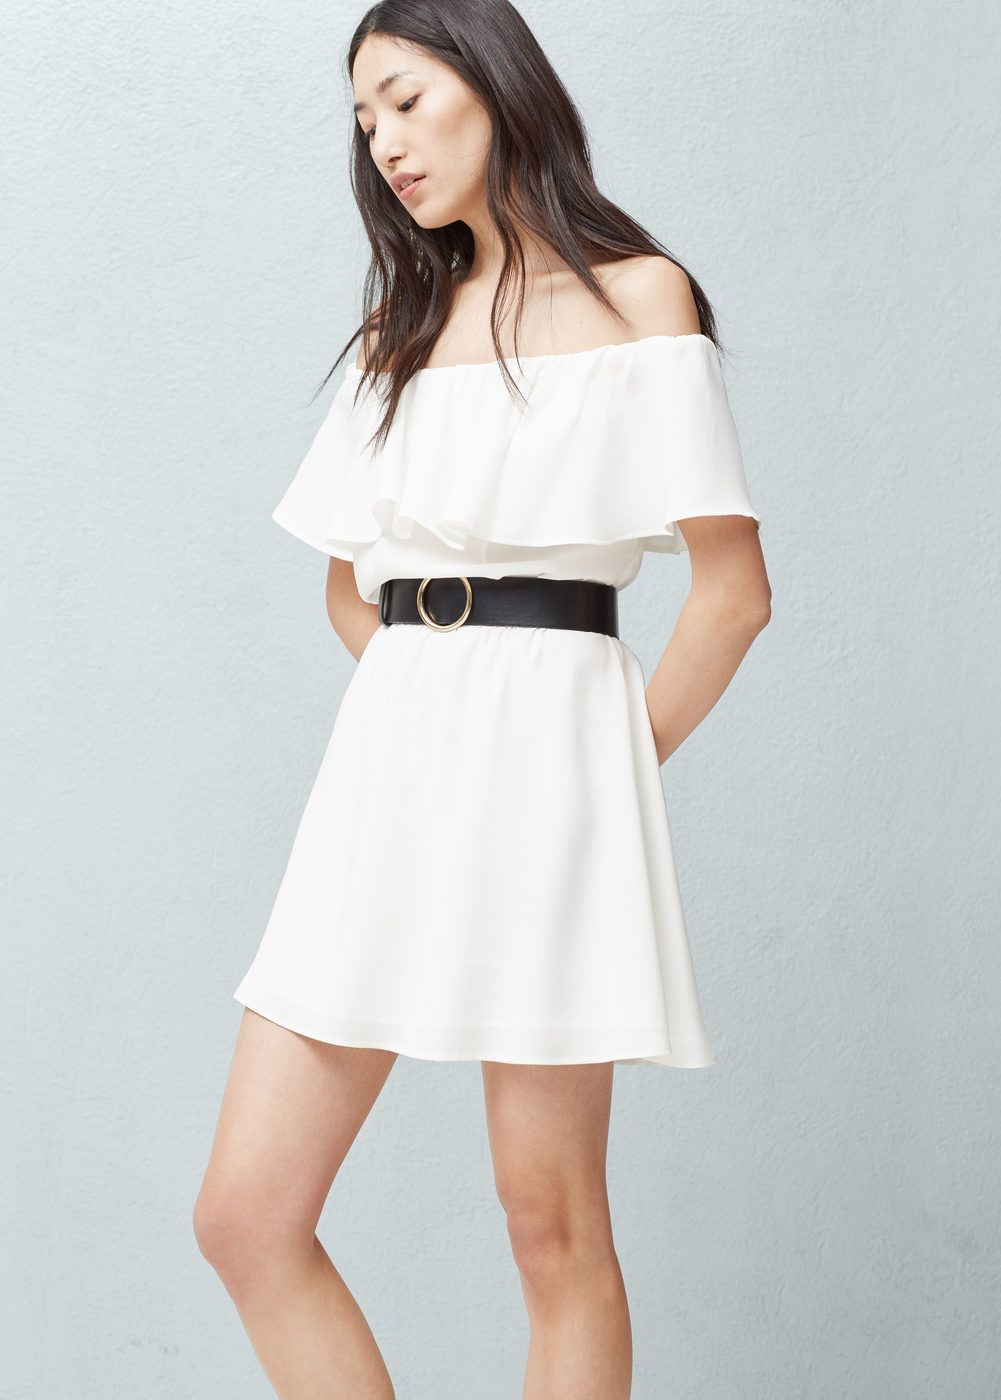 Frilled belt dress - Woman   Dresses   Pinterest   Dresses, Belted ... 6e2361ba2f7